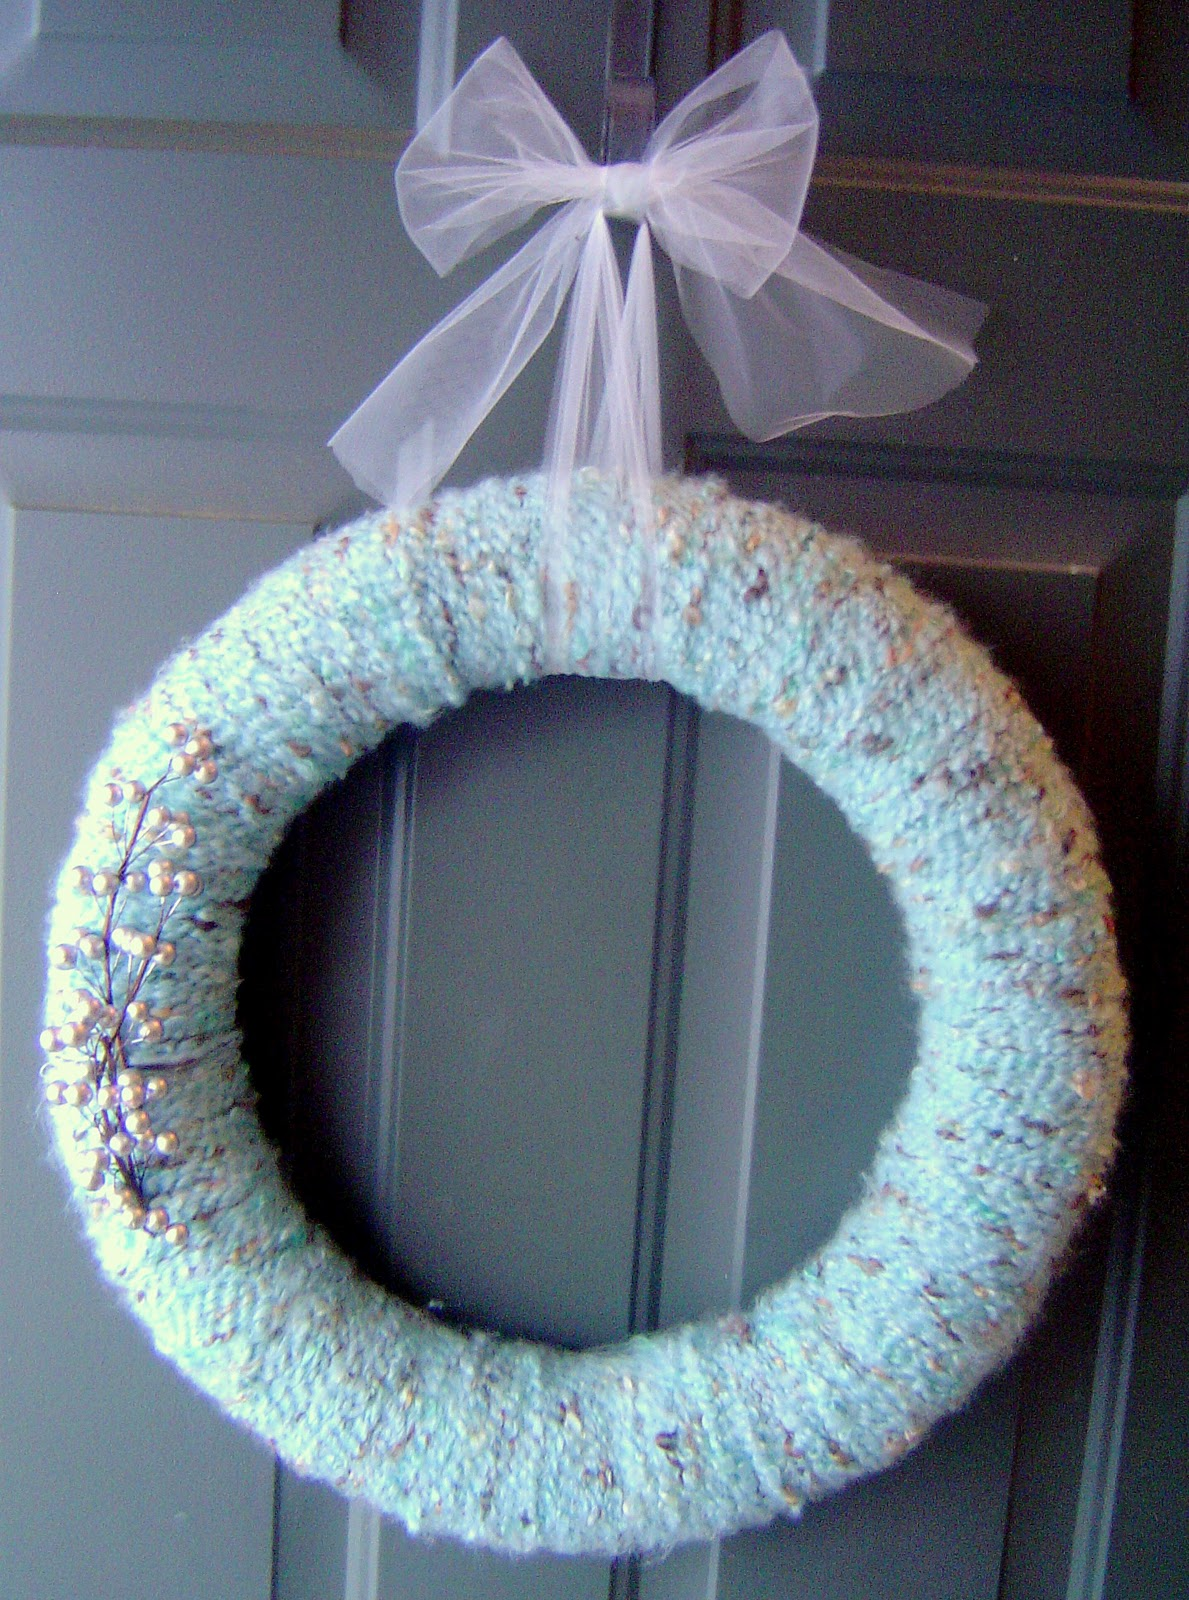 My Yarn Wreath (no knitting or sewing involved...promise!)